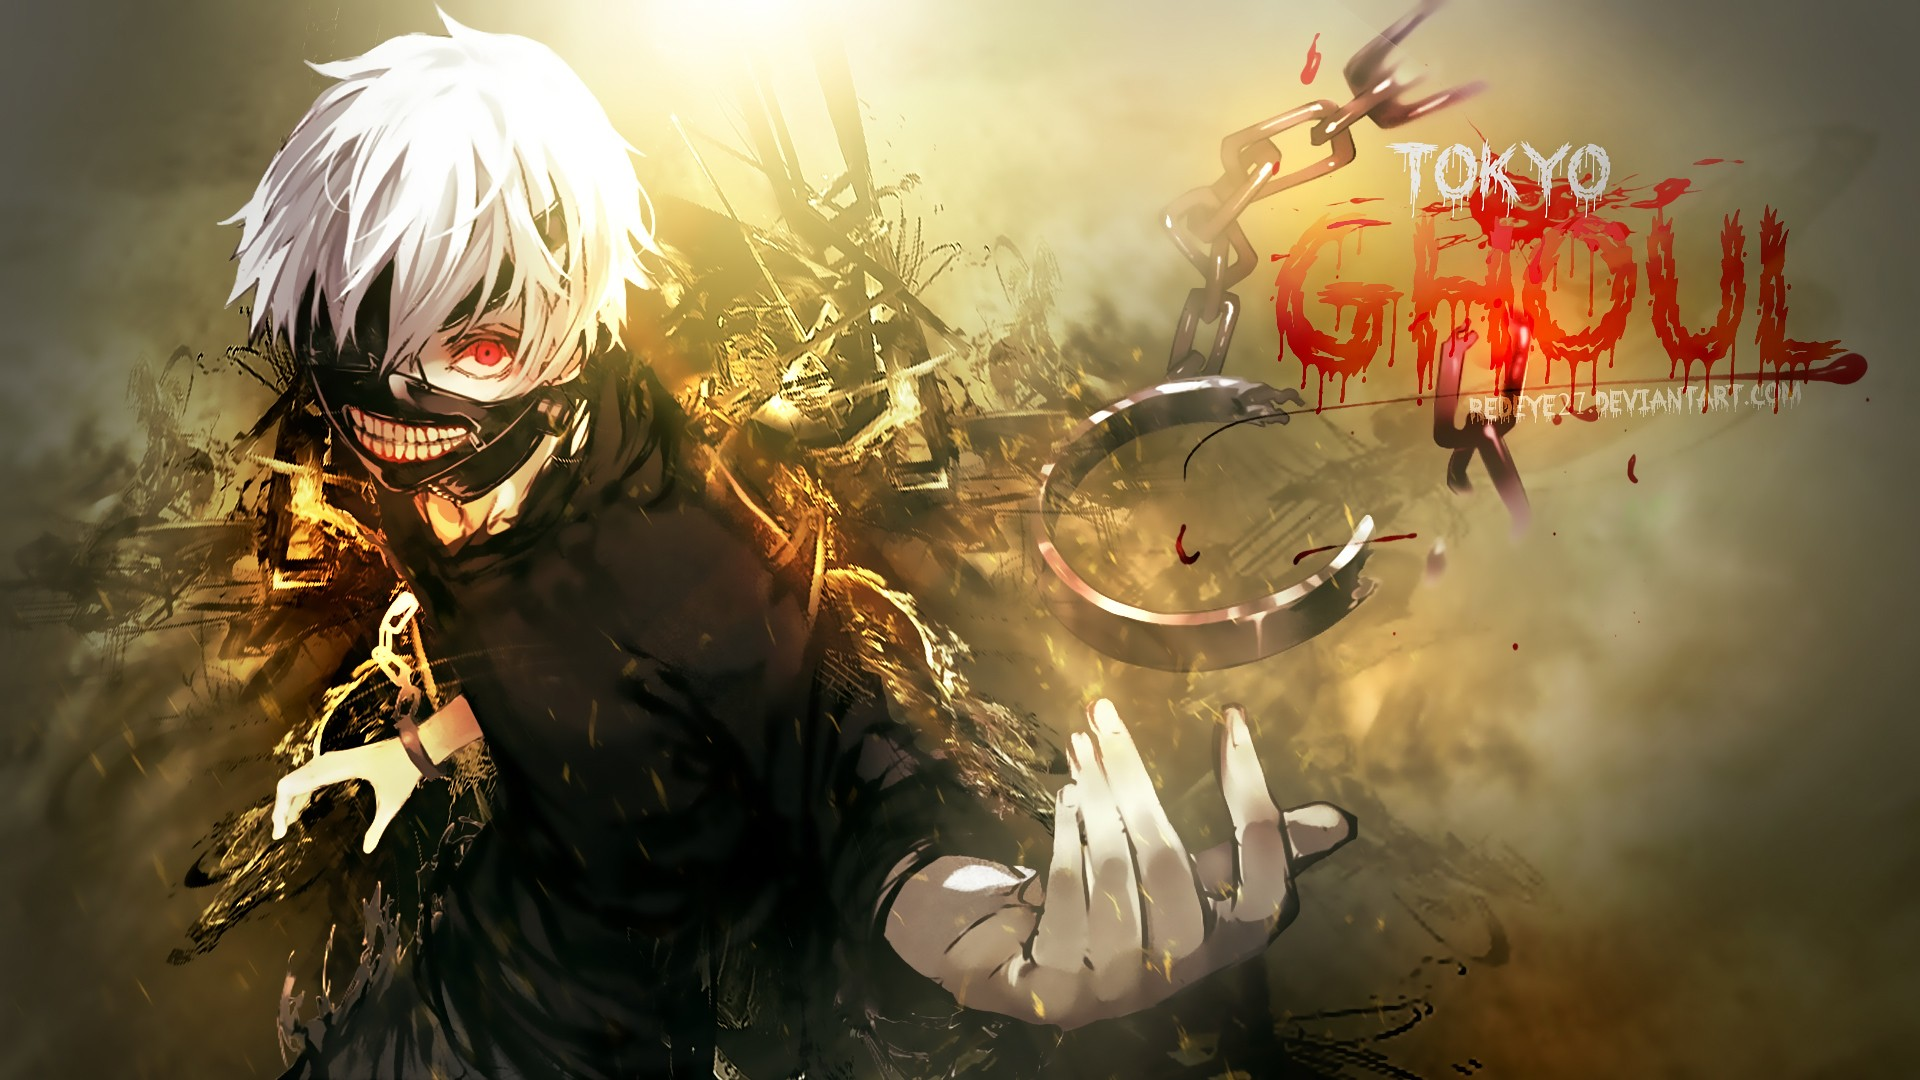 Live wallpaper is an exciting and novel way of spicing up your smartphone's home and lock screens. Tokyo Ghoul wallpaper HD ·① Download free cool backgrounds ...